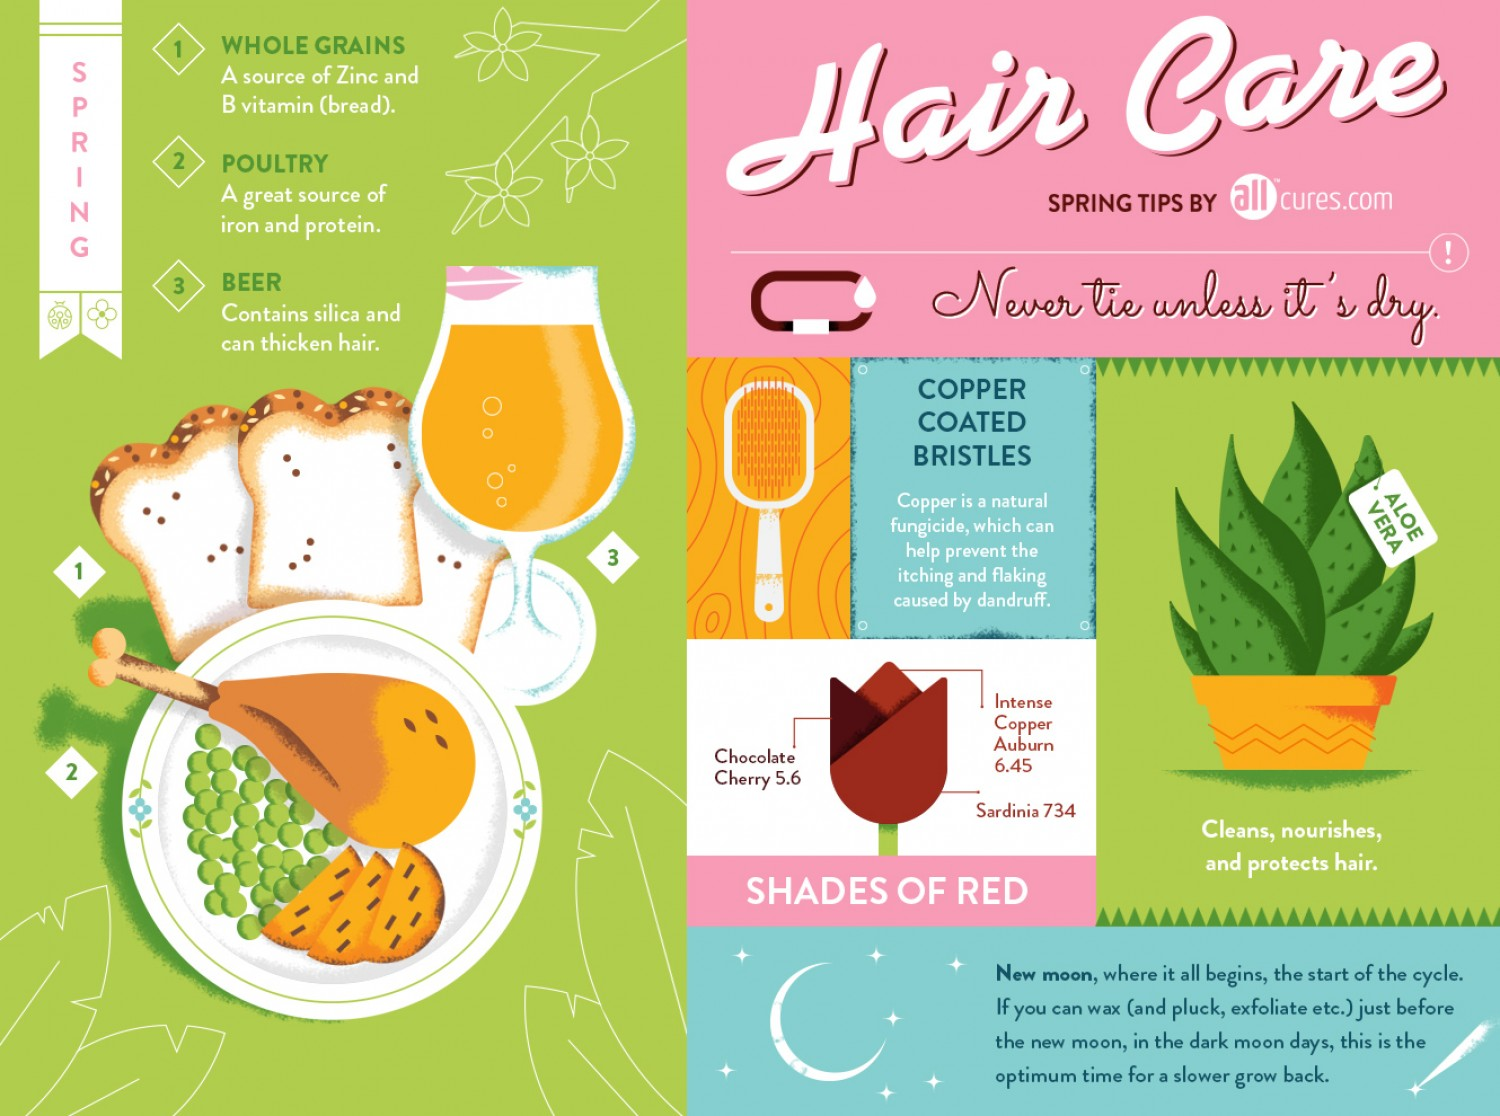 hair-care-tips-for-this-spring_553612888db2a_w1500